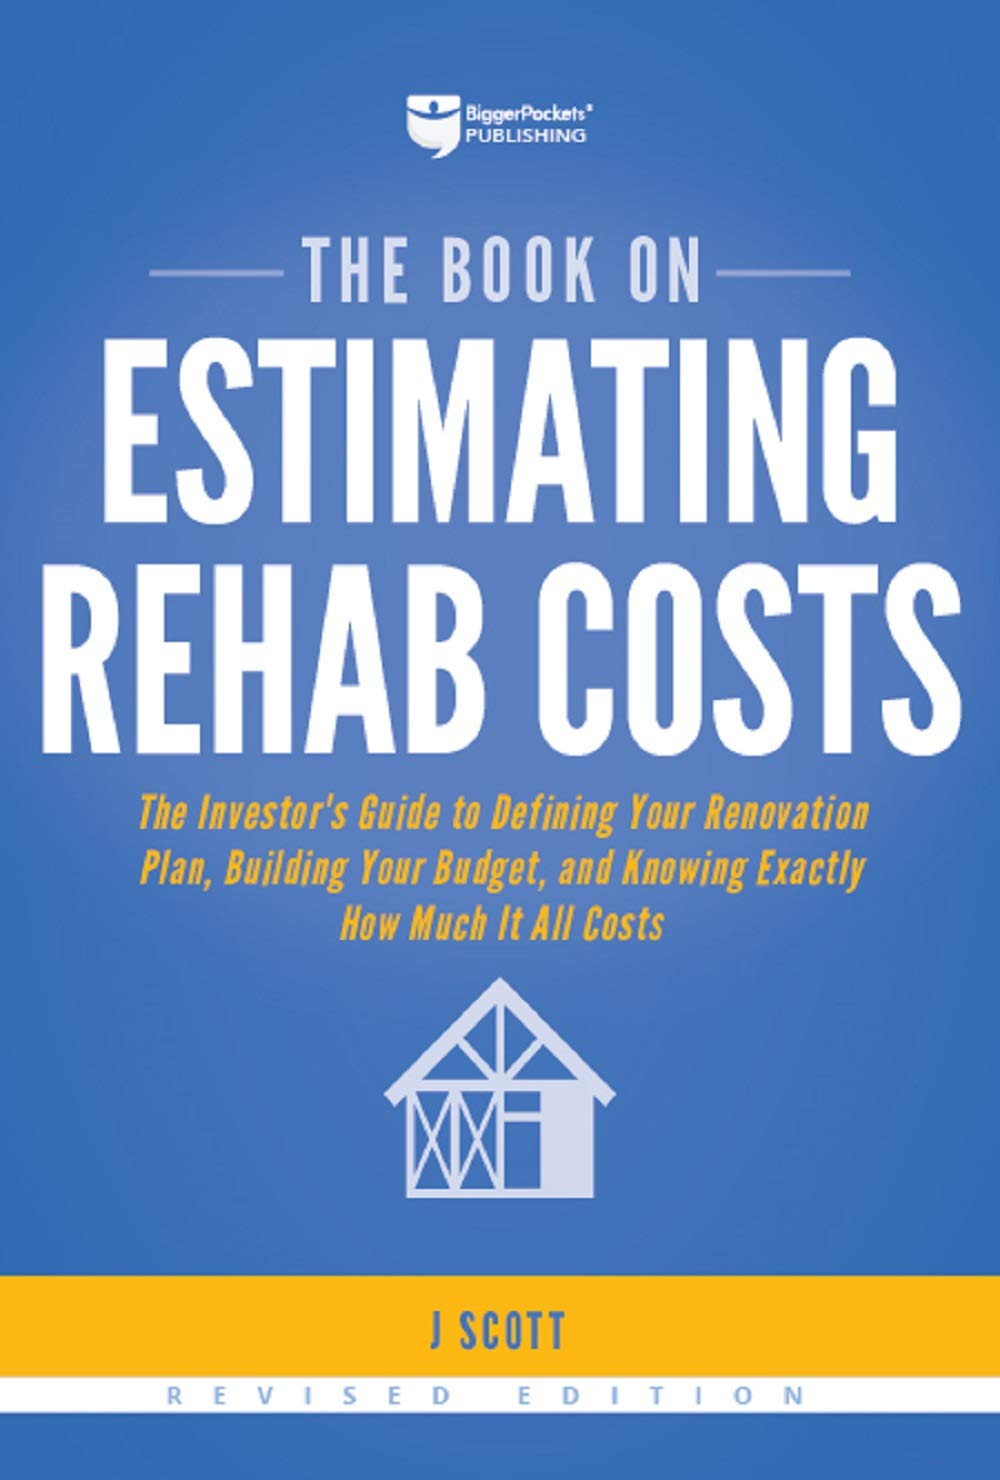 The Book on Estimating Rehab Costs: The Investor's Guide to Defining Your Renovation Plan, Building Your Budget, and…